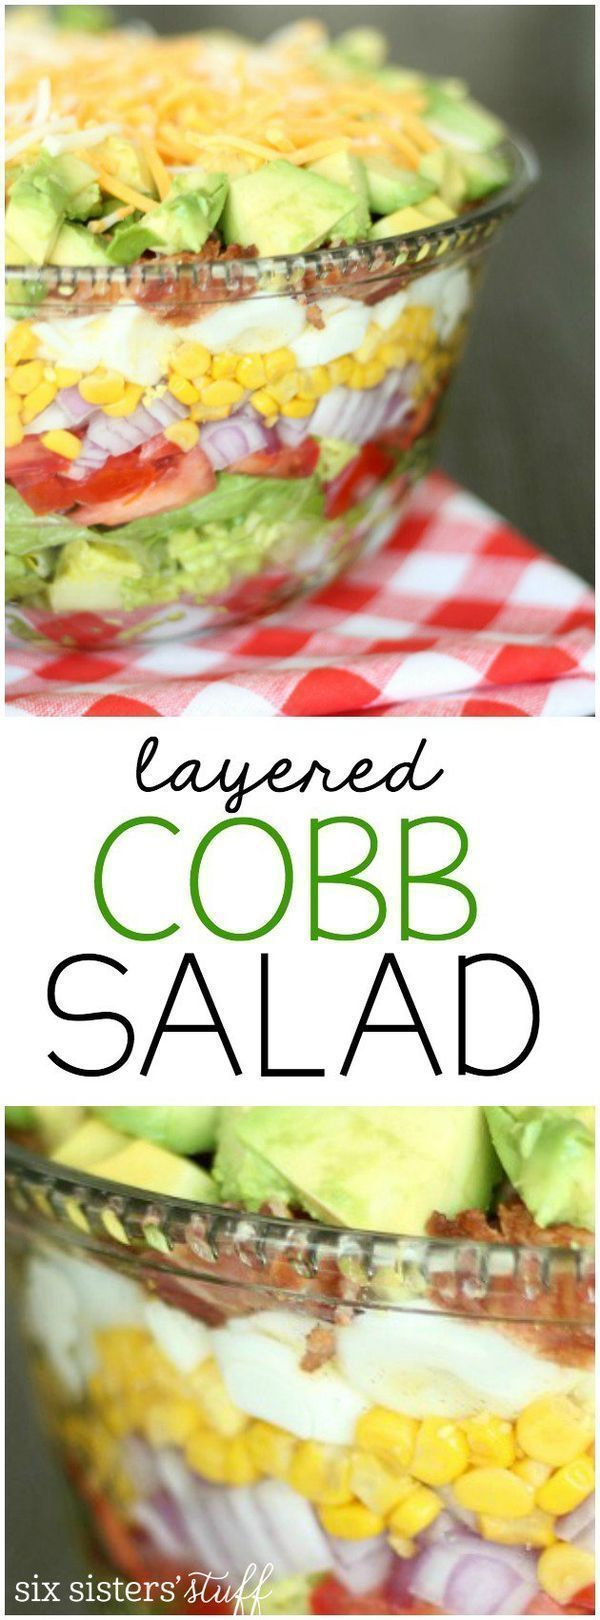 Layered Cobb Salad – Lunch